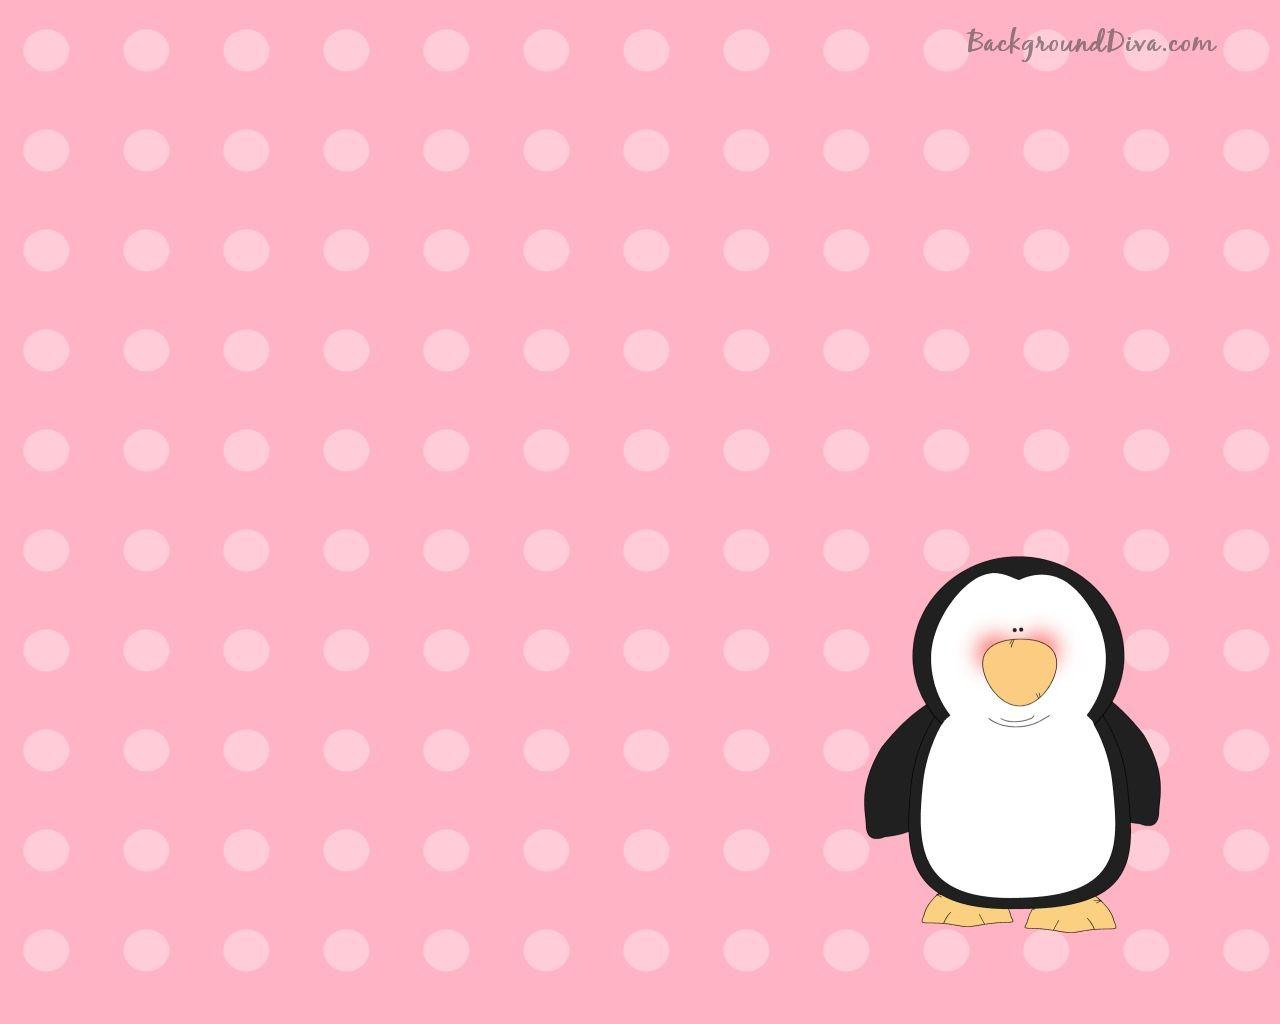 cute Backgrounds Wallpapers - Wallpaper cave